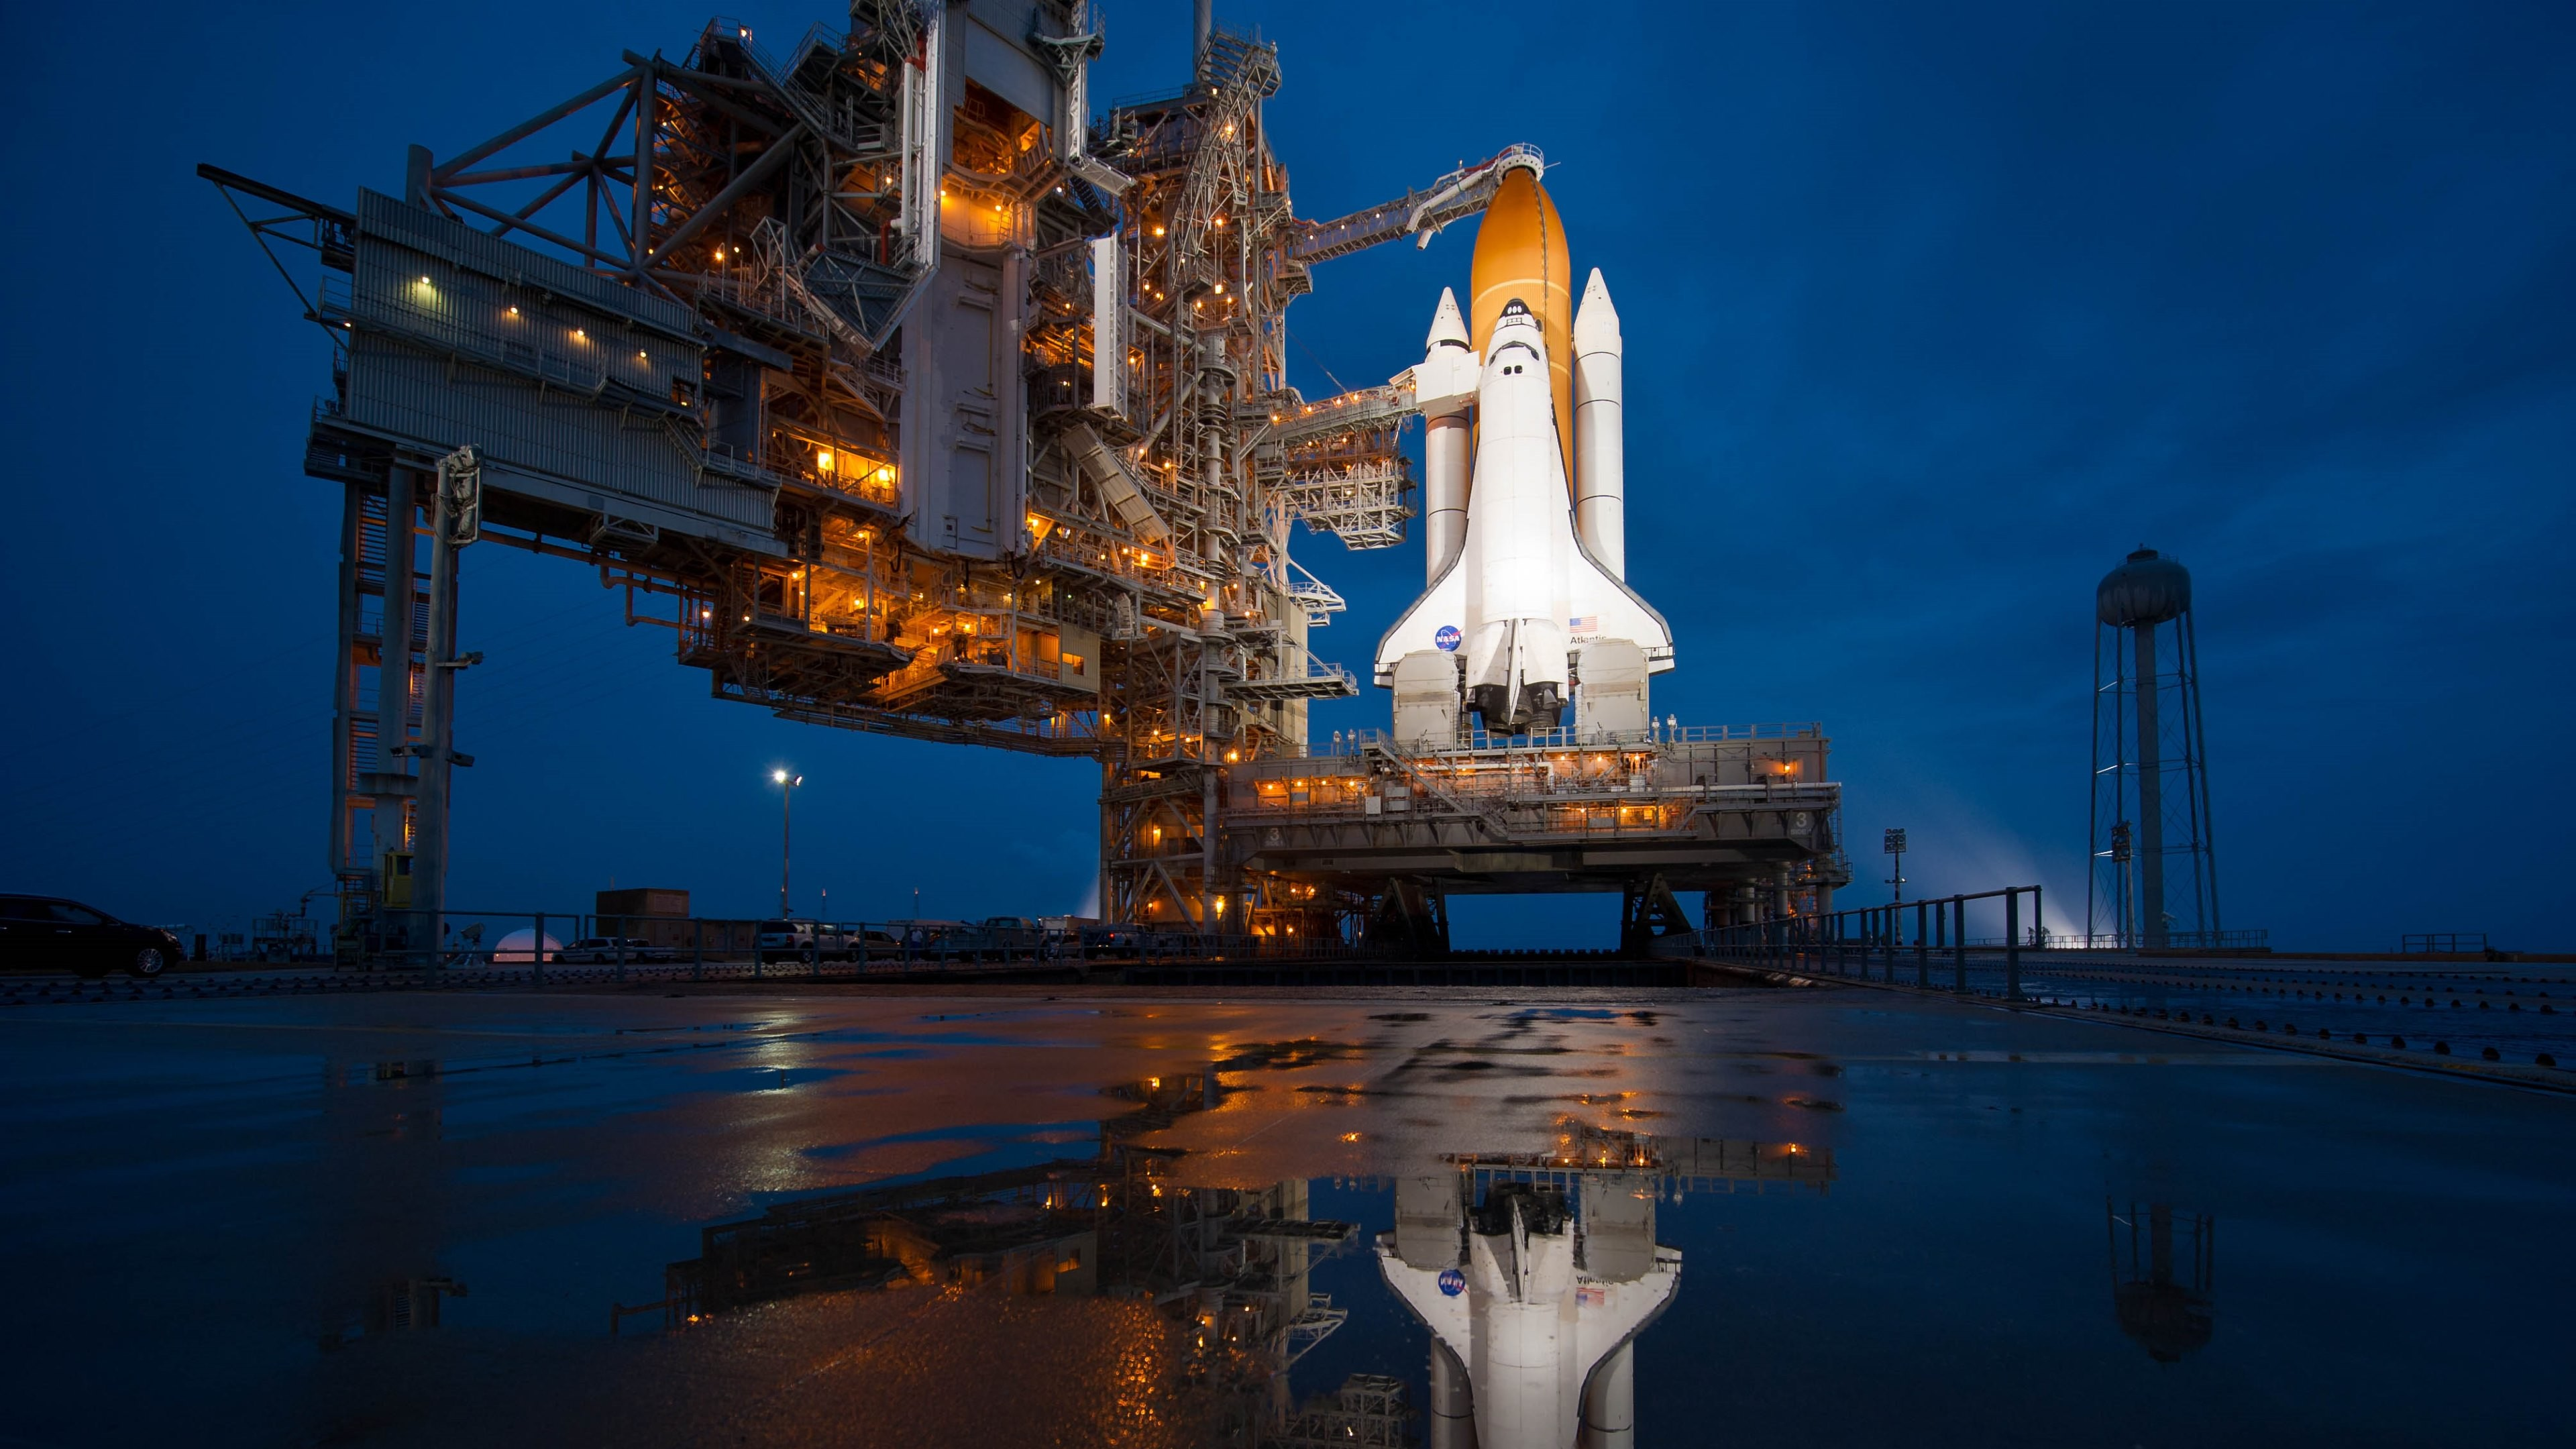 3840x2160 The 2nd HD wallpaper with the NASA Atlantis shuttle on the launch platform.  4K Ultra High Definition HD:  ...